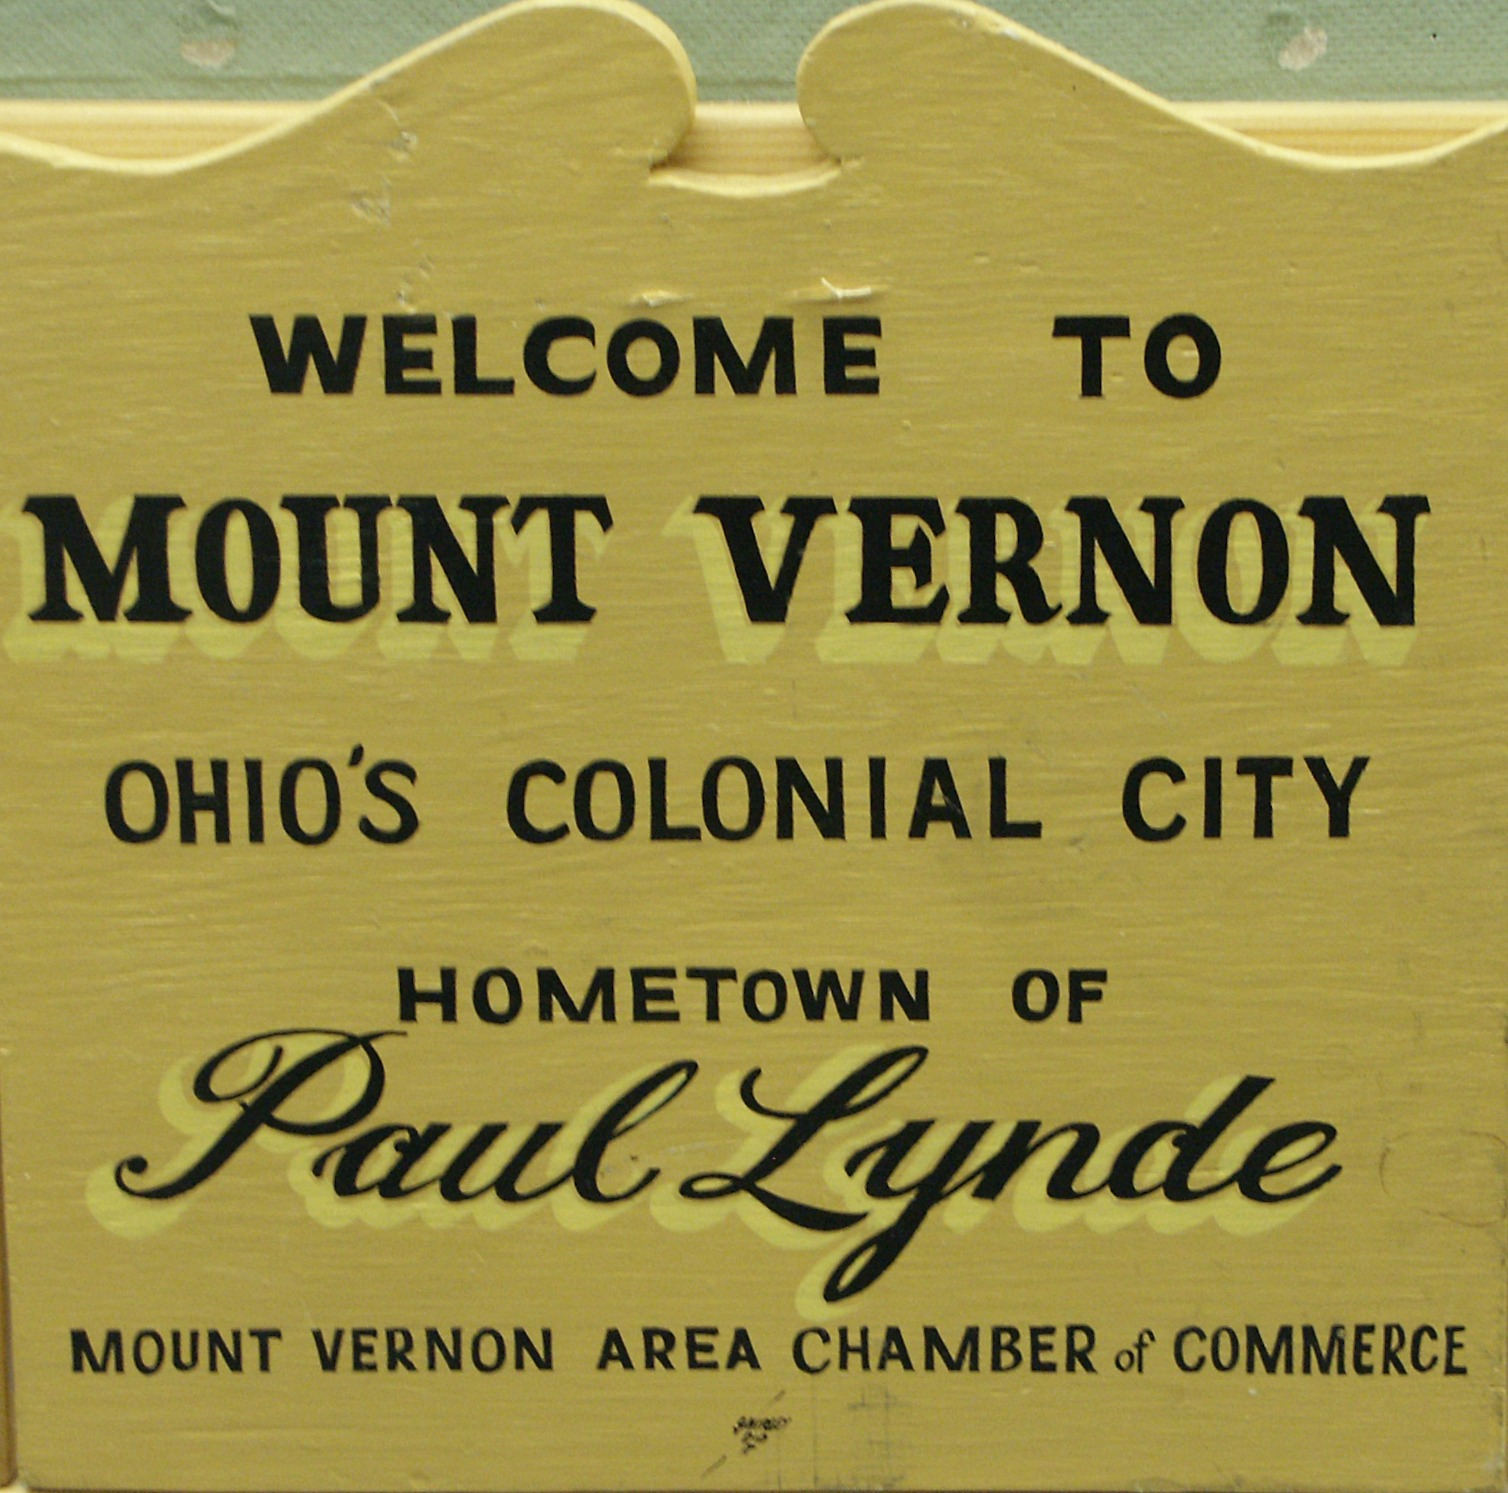 Paul Lynde signs at Mount Vernon city limits.